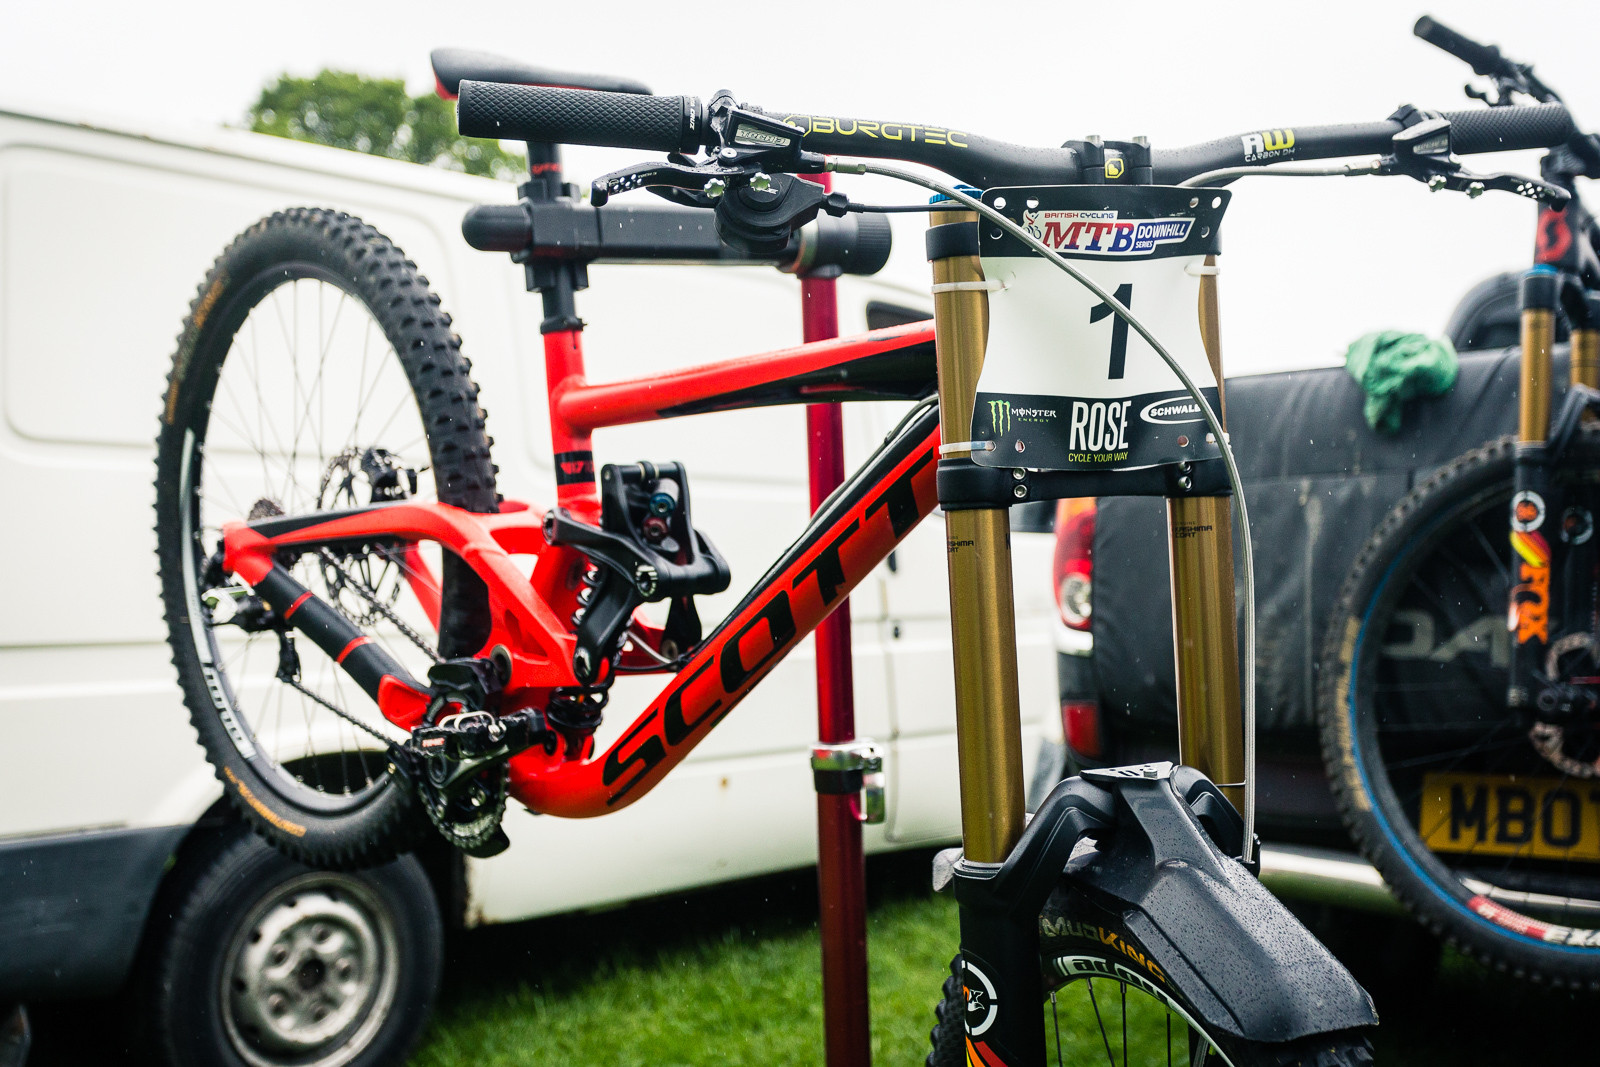 Marc Beaumont's Scott Gambler - PIT BITS - British Downhill Series, Llangollen - Mountain Biking Pictures - Vital MTB